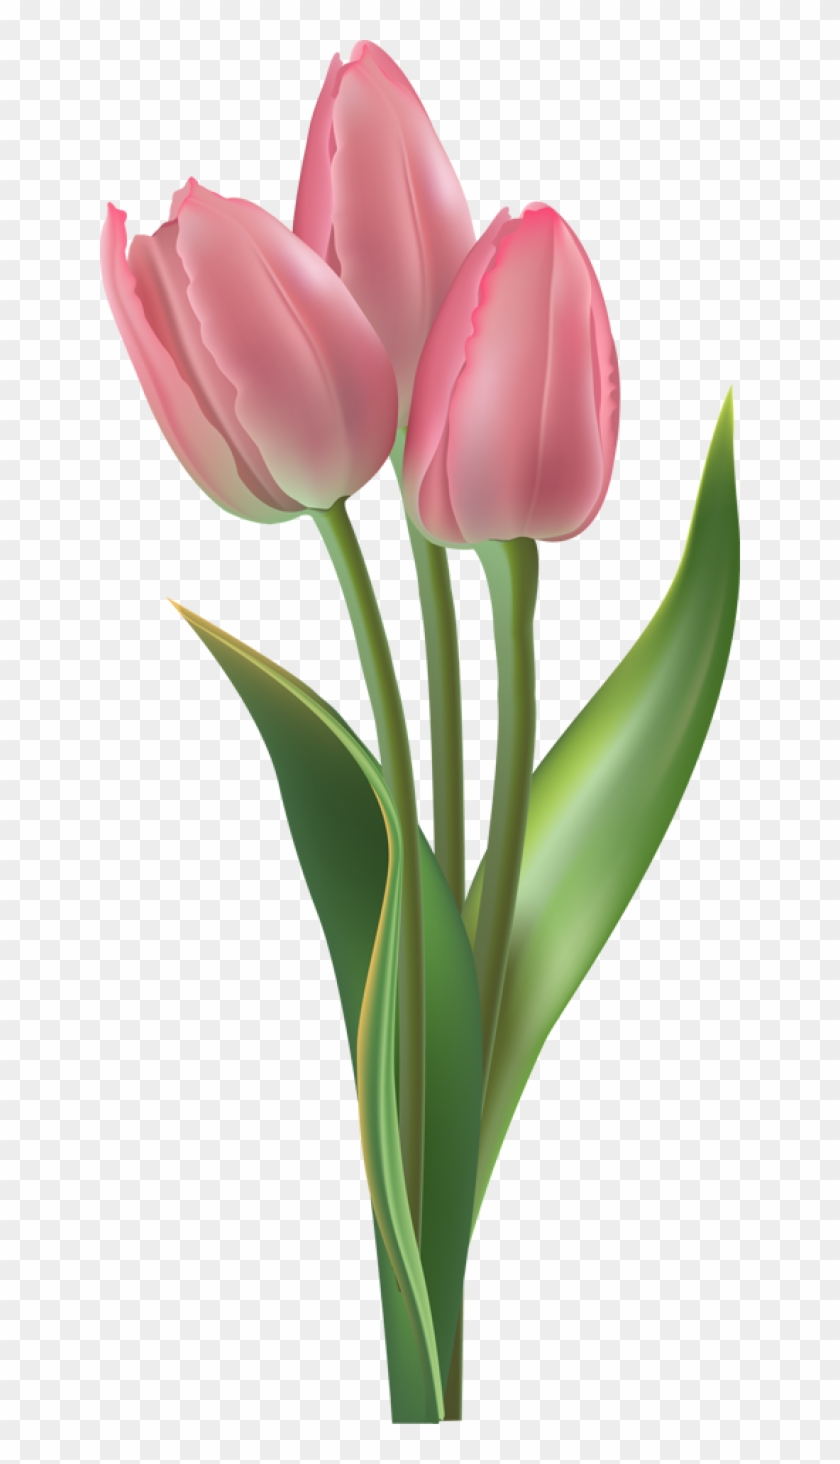 Tulip Transparent Background Png.